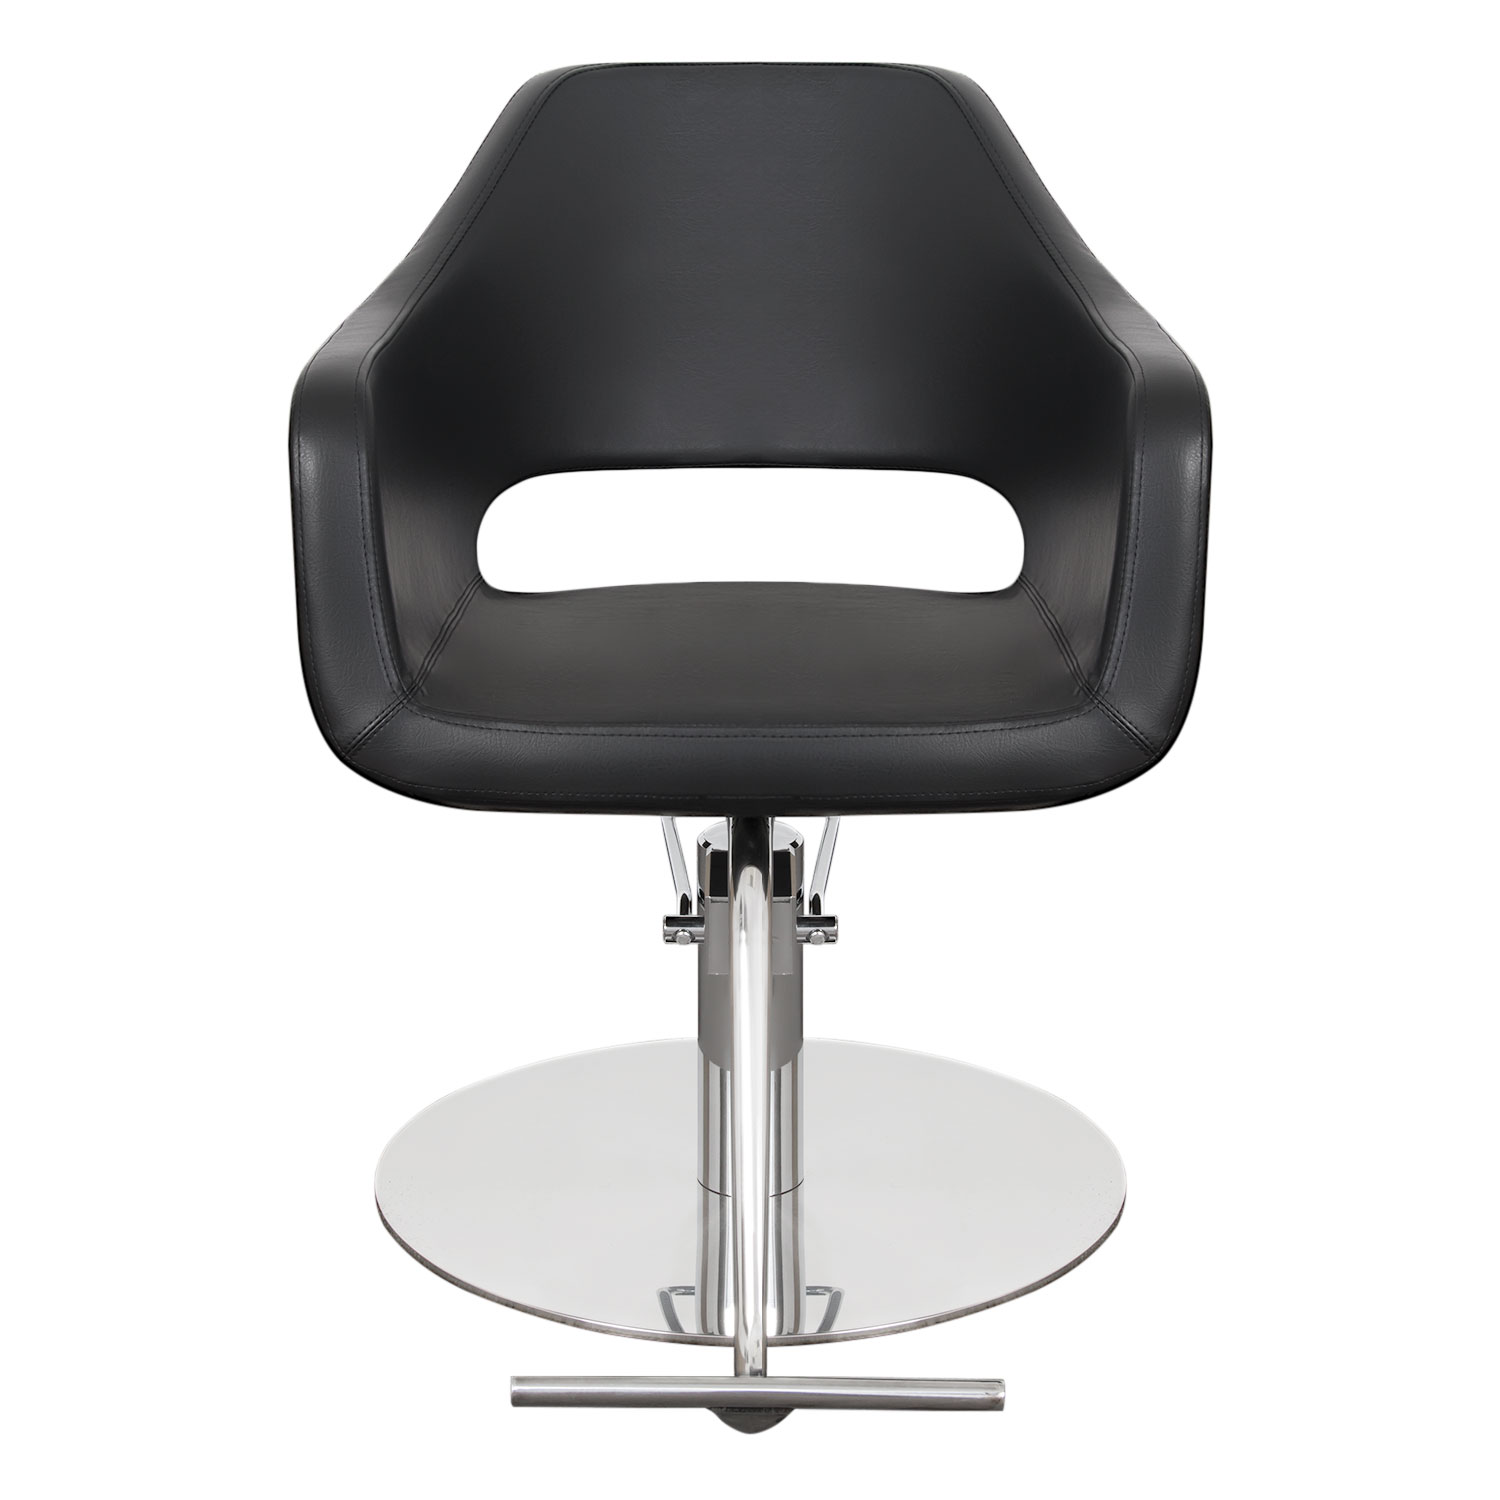 Novato Modern Beauty Shop Chair alternative product image 1